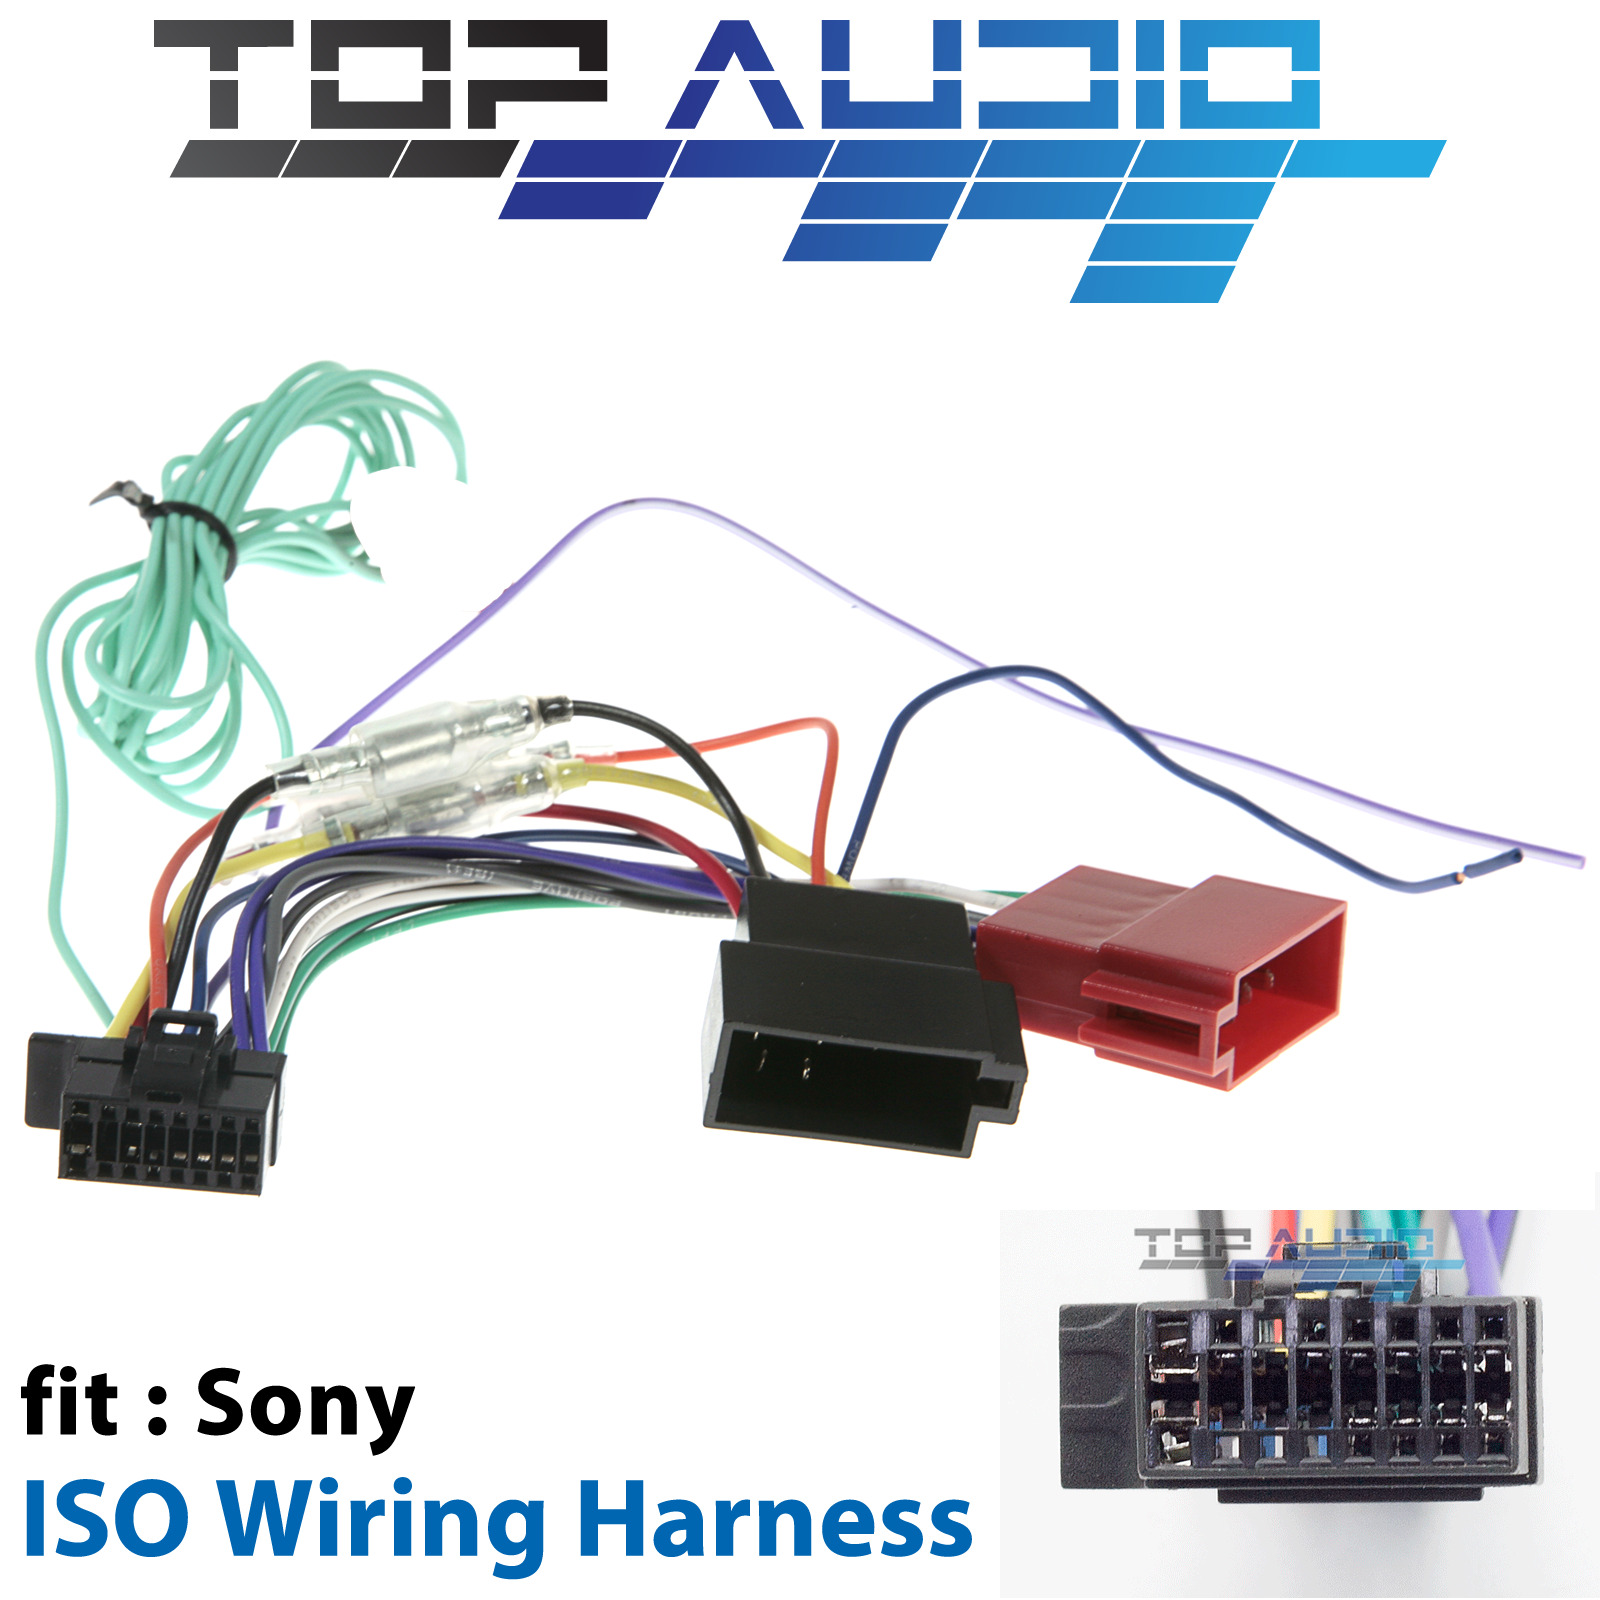 Sony Xav 712bt Iso Wiring Harness Cable Adaptor Connector Lead Loom Plugs Wire Plug 1 Of 4only 5 Available See More